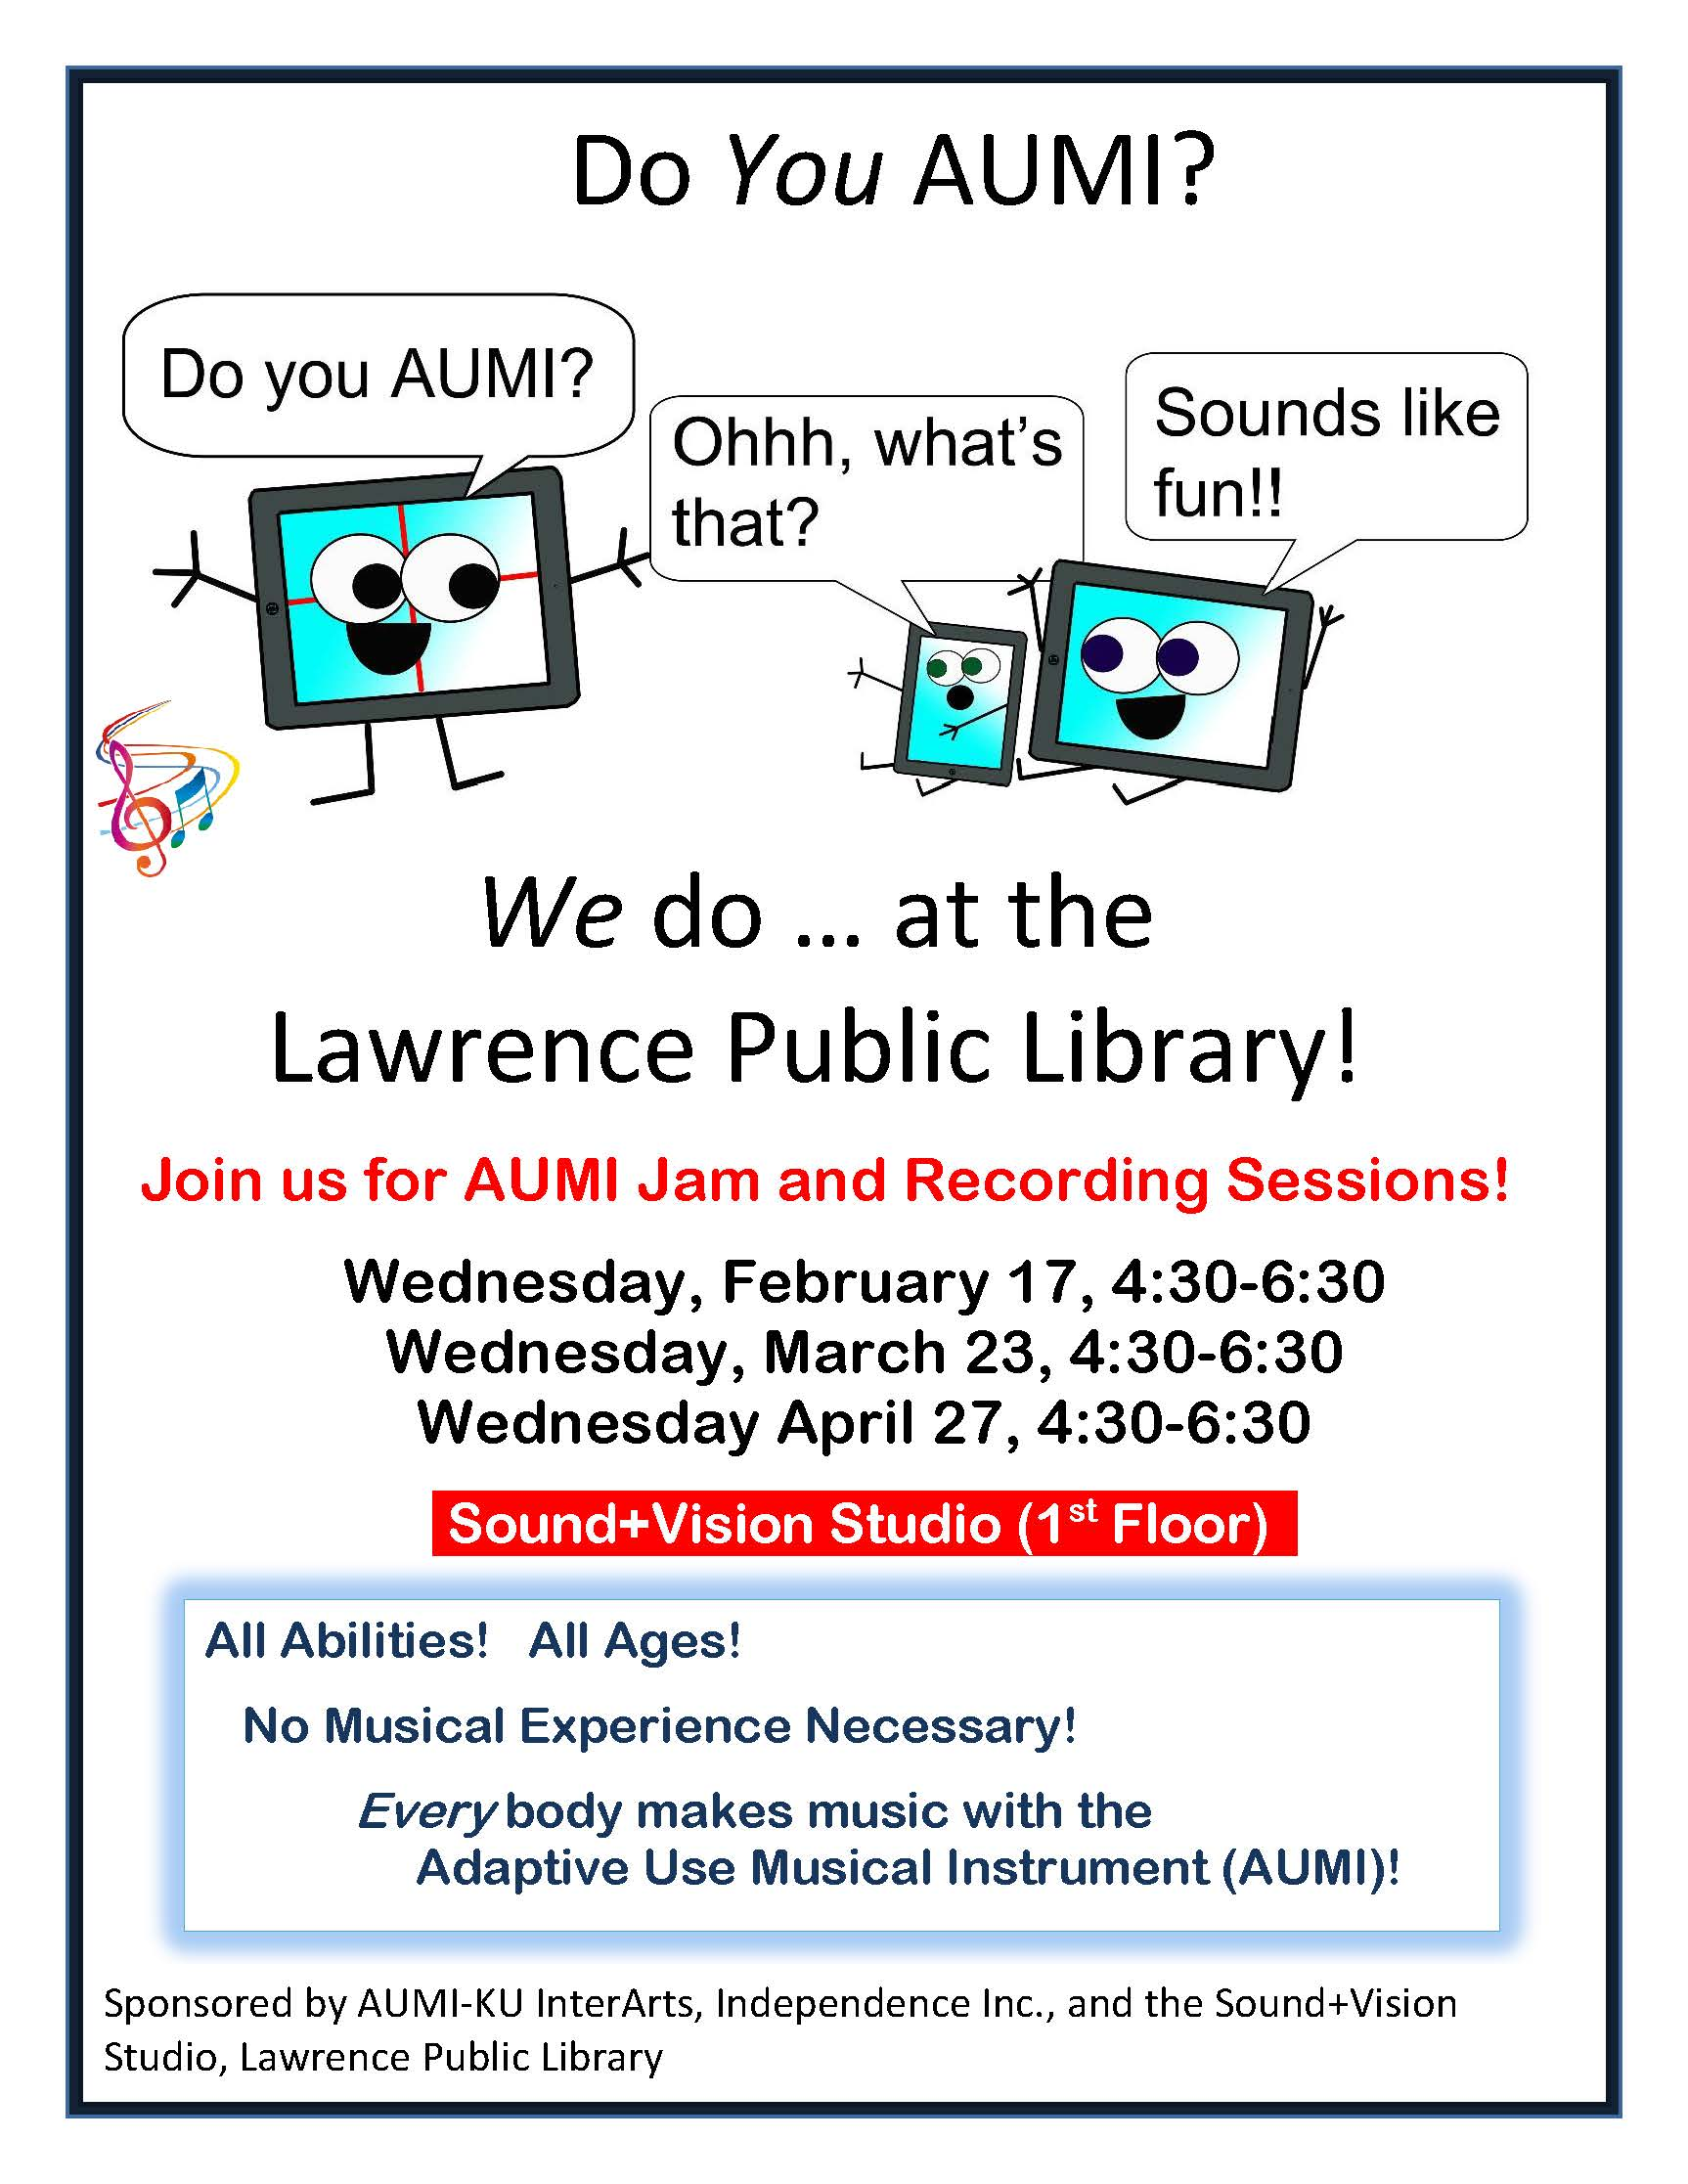 Join us for free community jam and recording sessions at the Lawrence Public Library on February 17, March 23, and April 27, 4:30-6:30 pm! In the Sound+Vision Lab, 1st floor. All abilities. All Ages. No musical experience necessary!